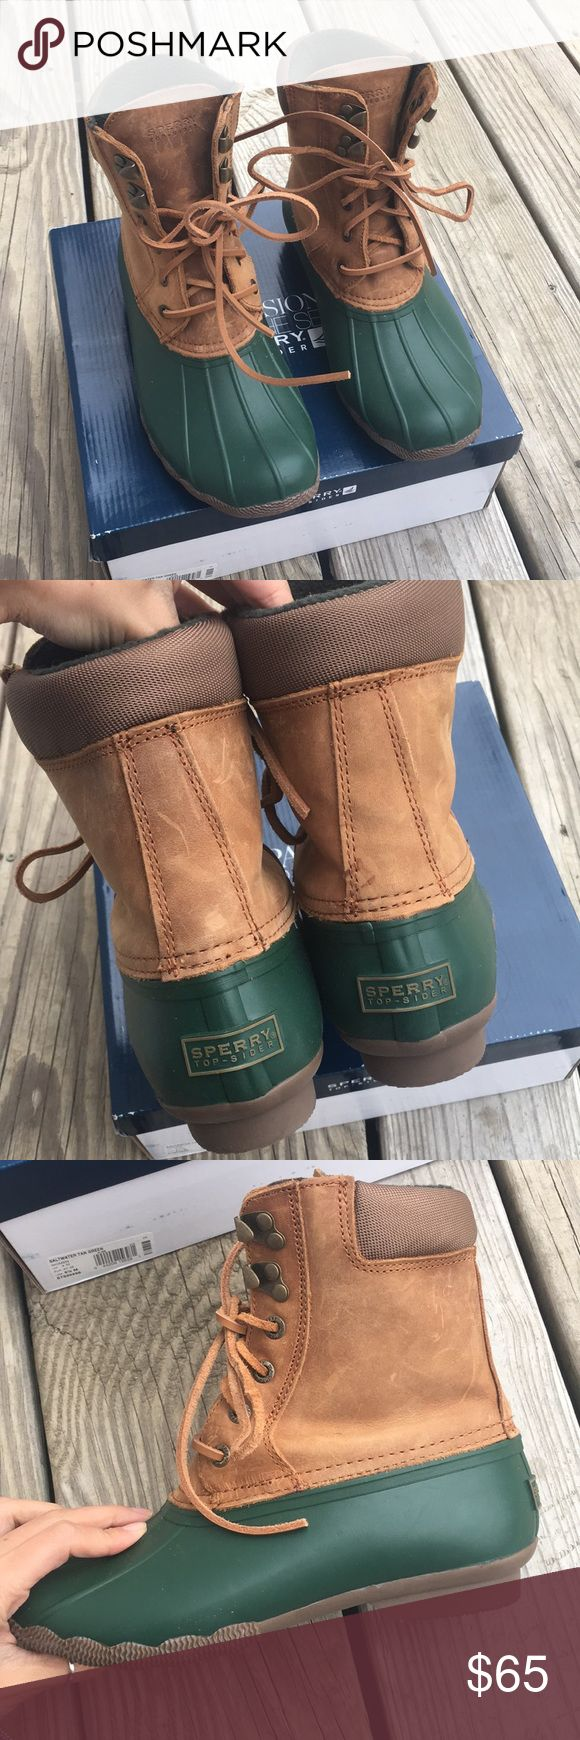 """Sperry Shearwater Waterproof Tan/Green Duck Boots Worn a couple of times. Very comfy and stylish. I wear a women's 6 and these fit with thick socks. Scratches on the leather. The box that I have says """"saltwater, 6.5"""" but they're not. Using this box to ship the shearwaters because I don't have the original box to it anymore.  Microfleece lining, a padded collar, and a siped, lugged sole provide warmth and superior traction. 6 1/2"""" bootie shaft.  Lace-up style.  Rawhide laces. Sperry Shoes…"""